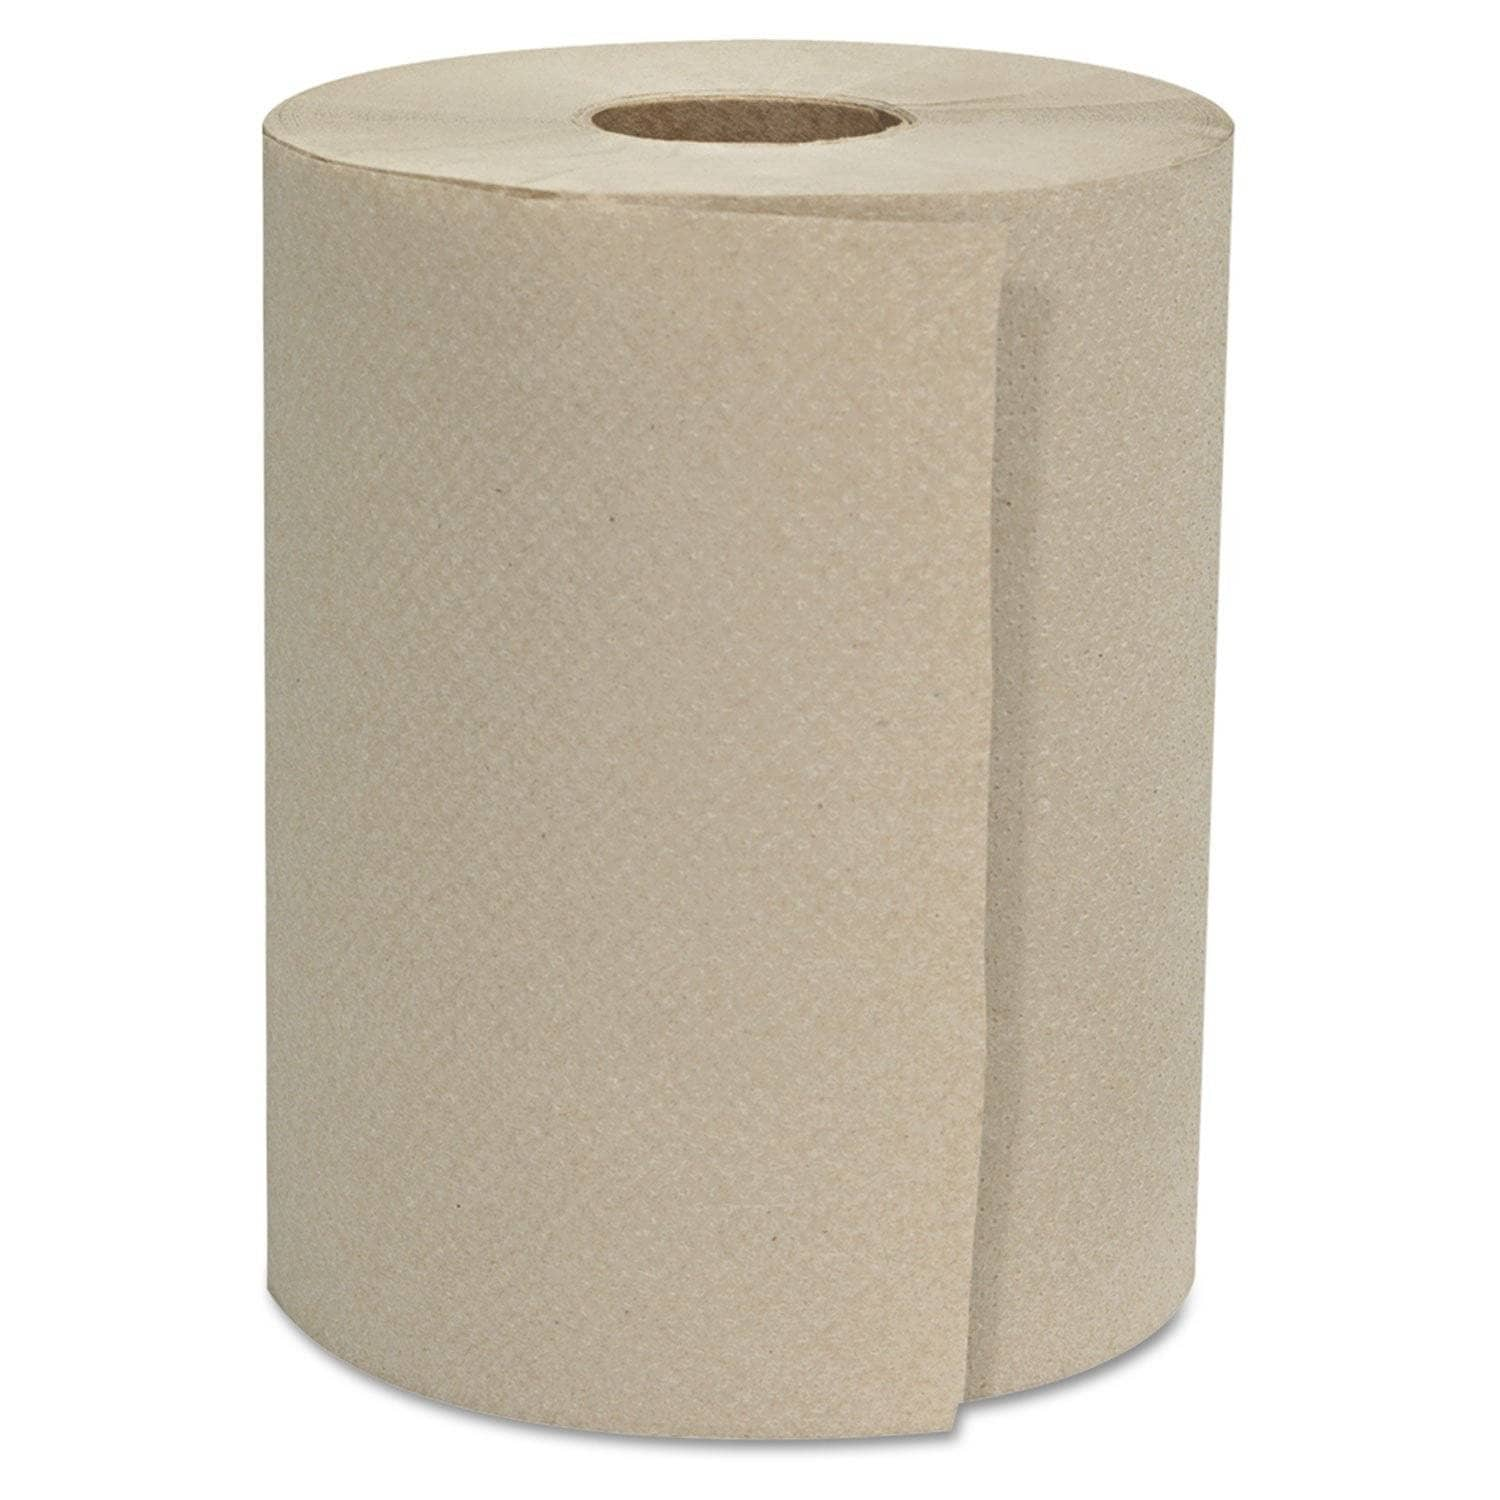 "GEN Hardwound Roll Towels, 1-Ply, Natural, 8"" X 800 Ft, 6 Rolls/Carton - GEN8X800HWTKF - TotalRestroom.com"